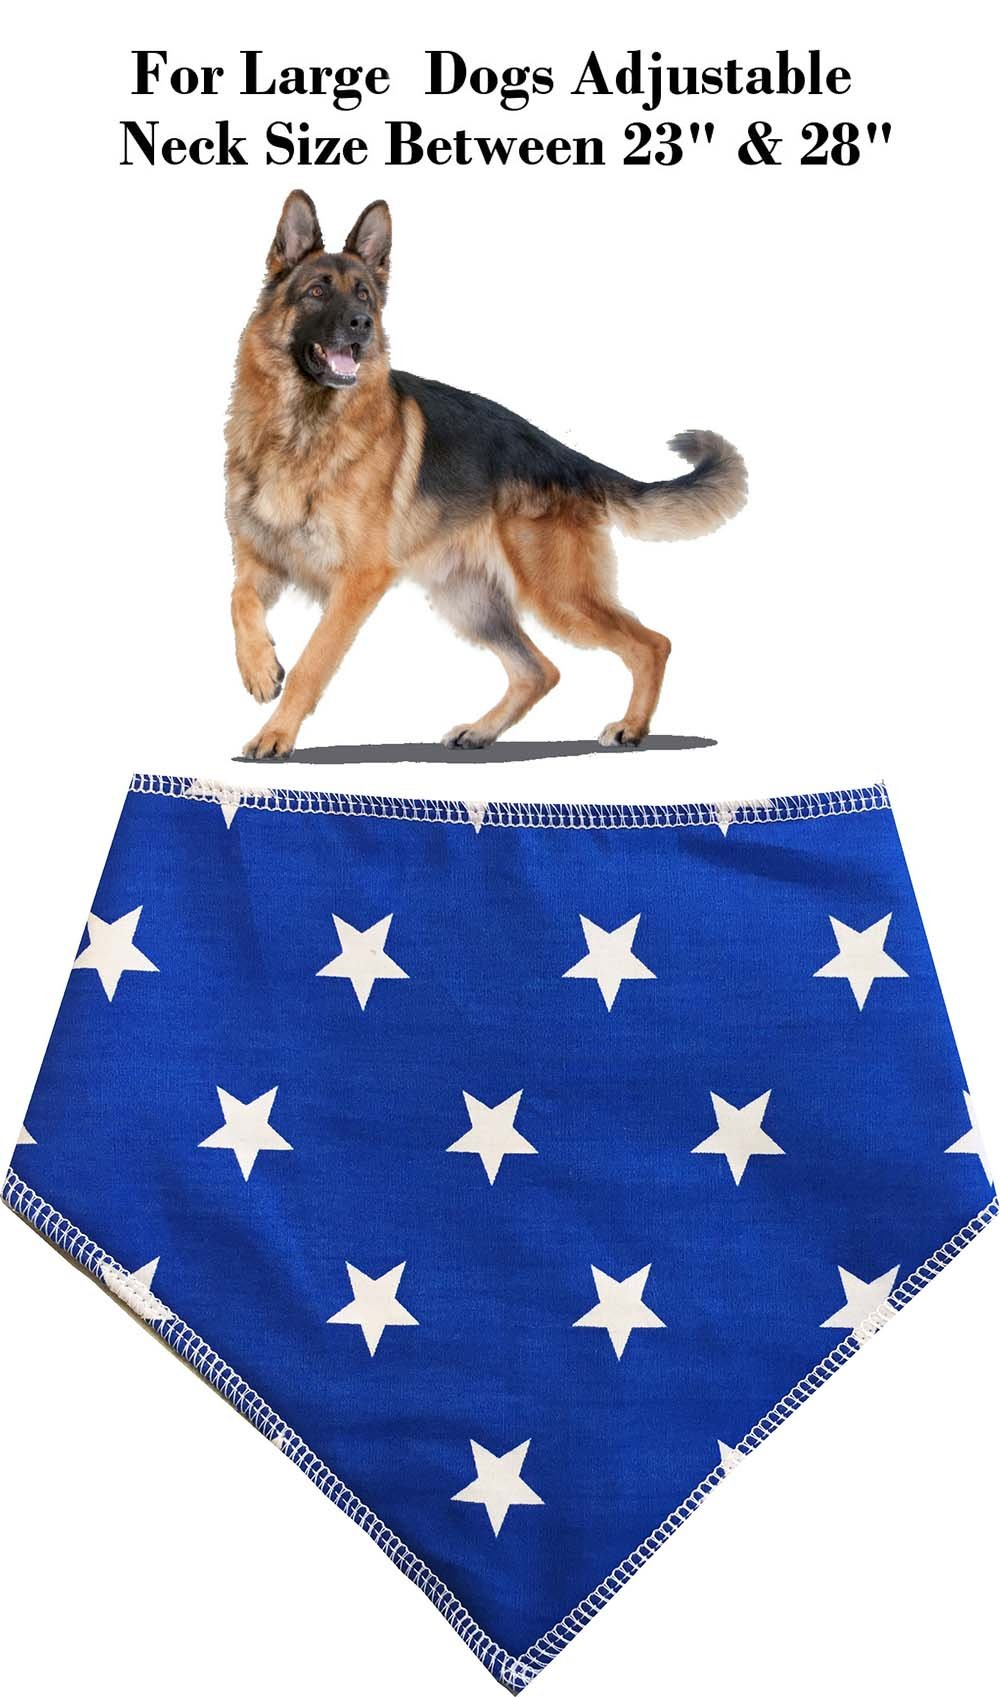 Spoilt Rotten Pets (S4) Branded Blue With White Stars, Dog Bandana Adjustable Neck to Fit Large to Extra/Large Dogs – Neck Size 23″ – 28″ Generally Fits Chow Chow, German Shepherd, St Bernard, Dogue de Bordeaux and Similar Sized Dogs.